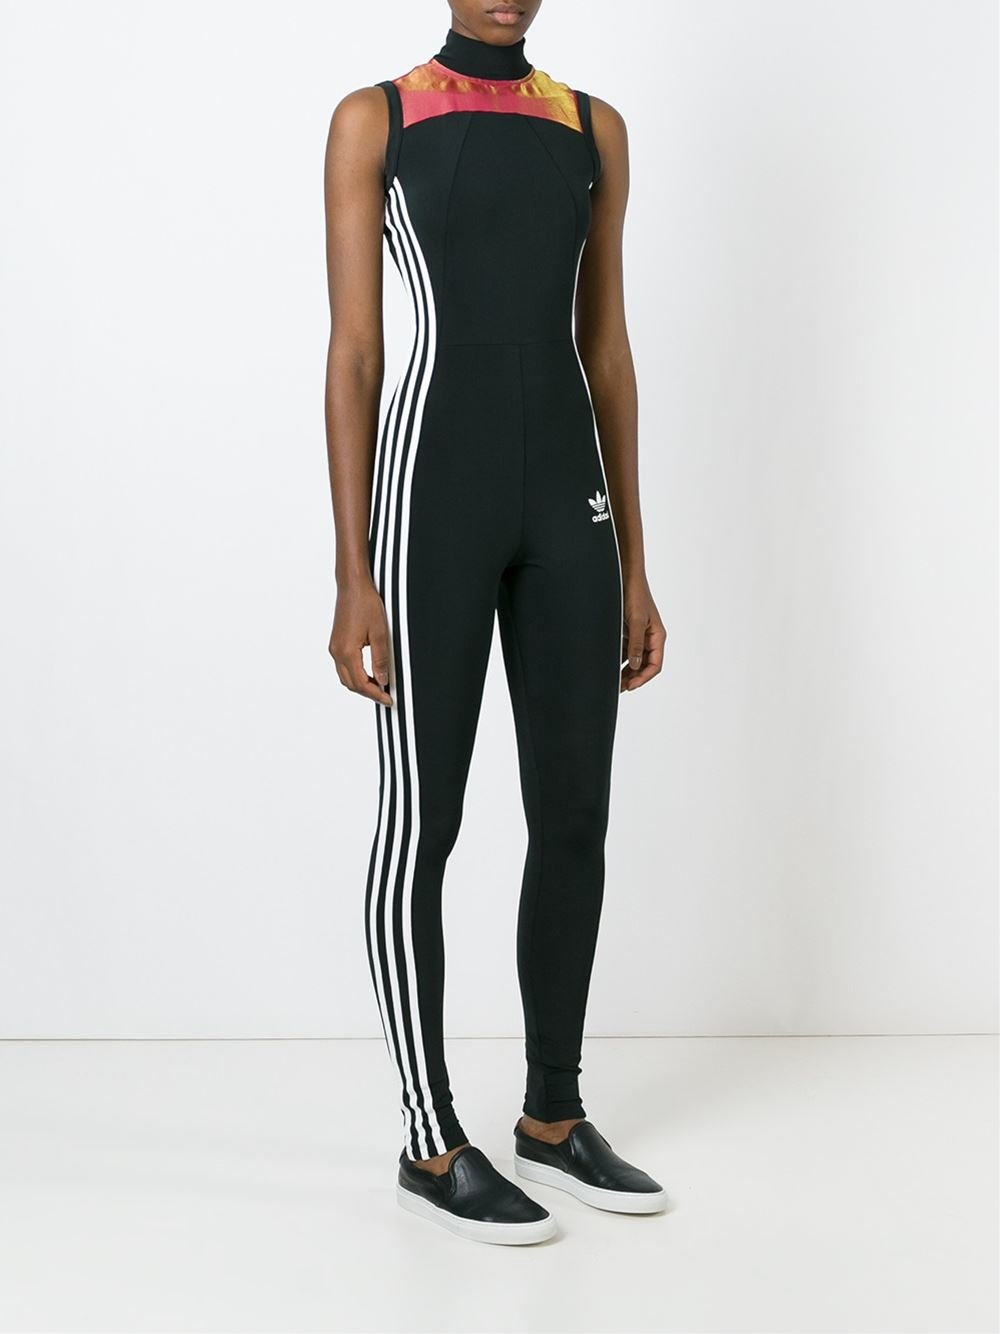 Adidas Space Shifter All In One Jumpsuit